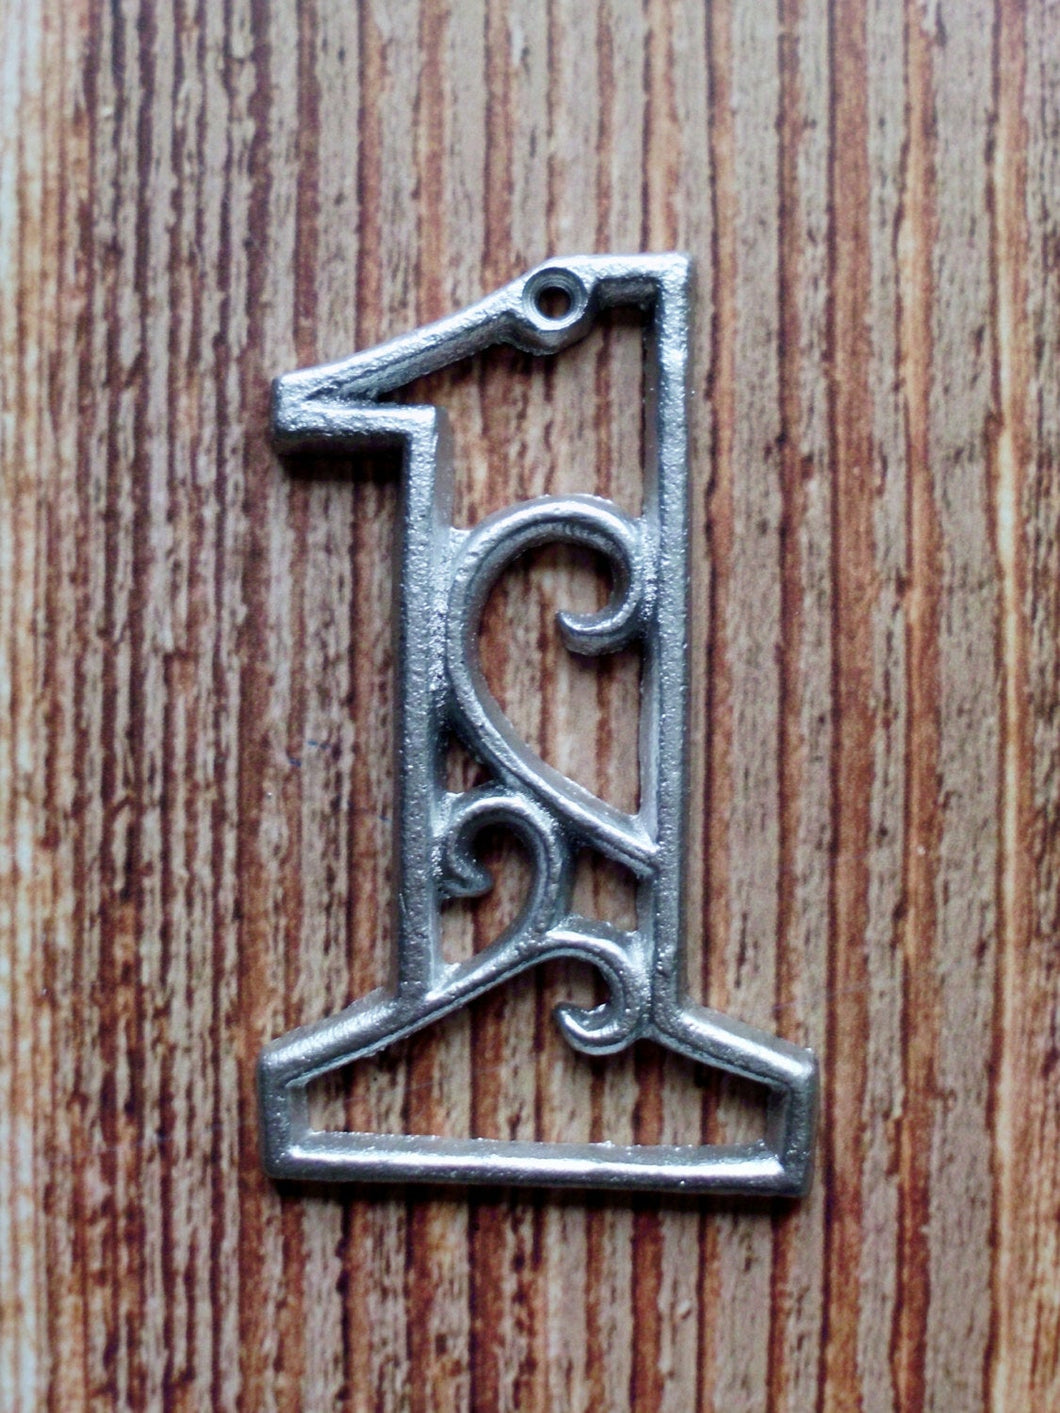 House Number One Metallic Silver Cast Iron Wall Hangers Decorative Victorian Decor 4.5 inches Table Numbers